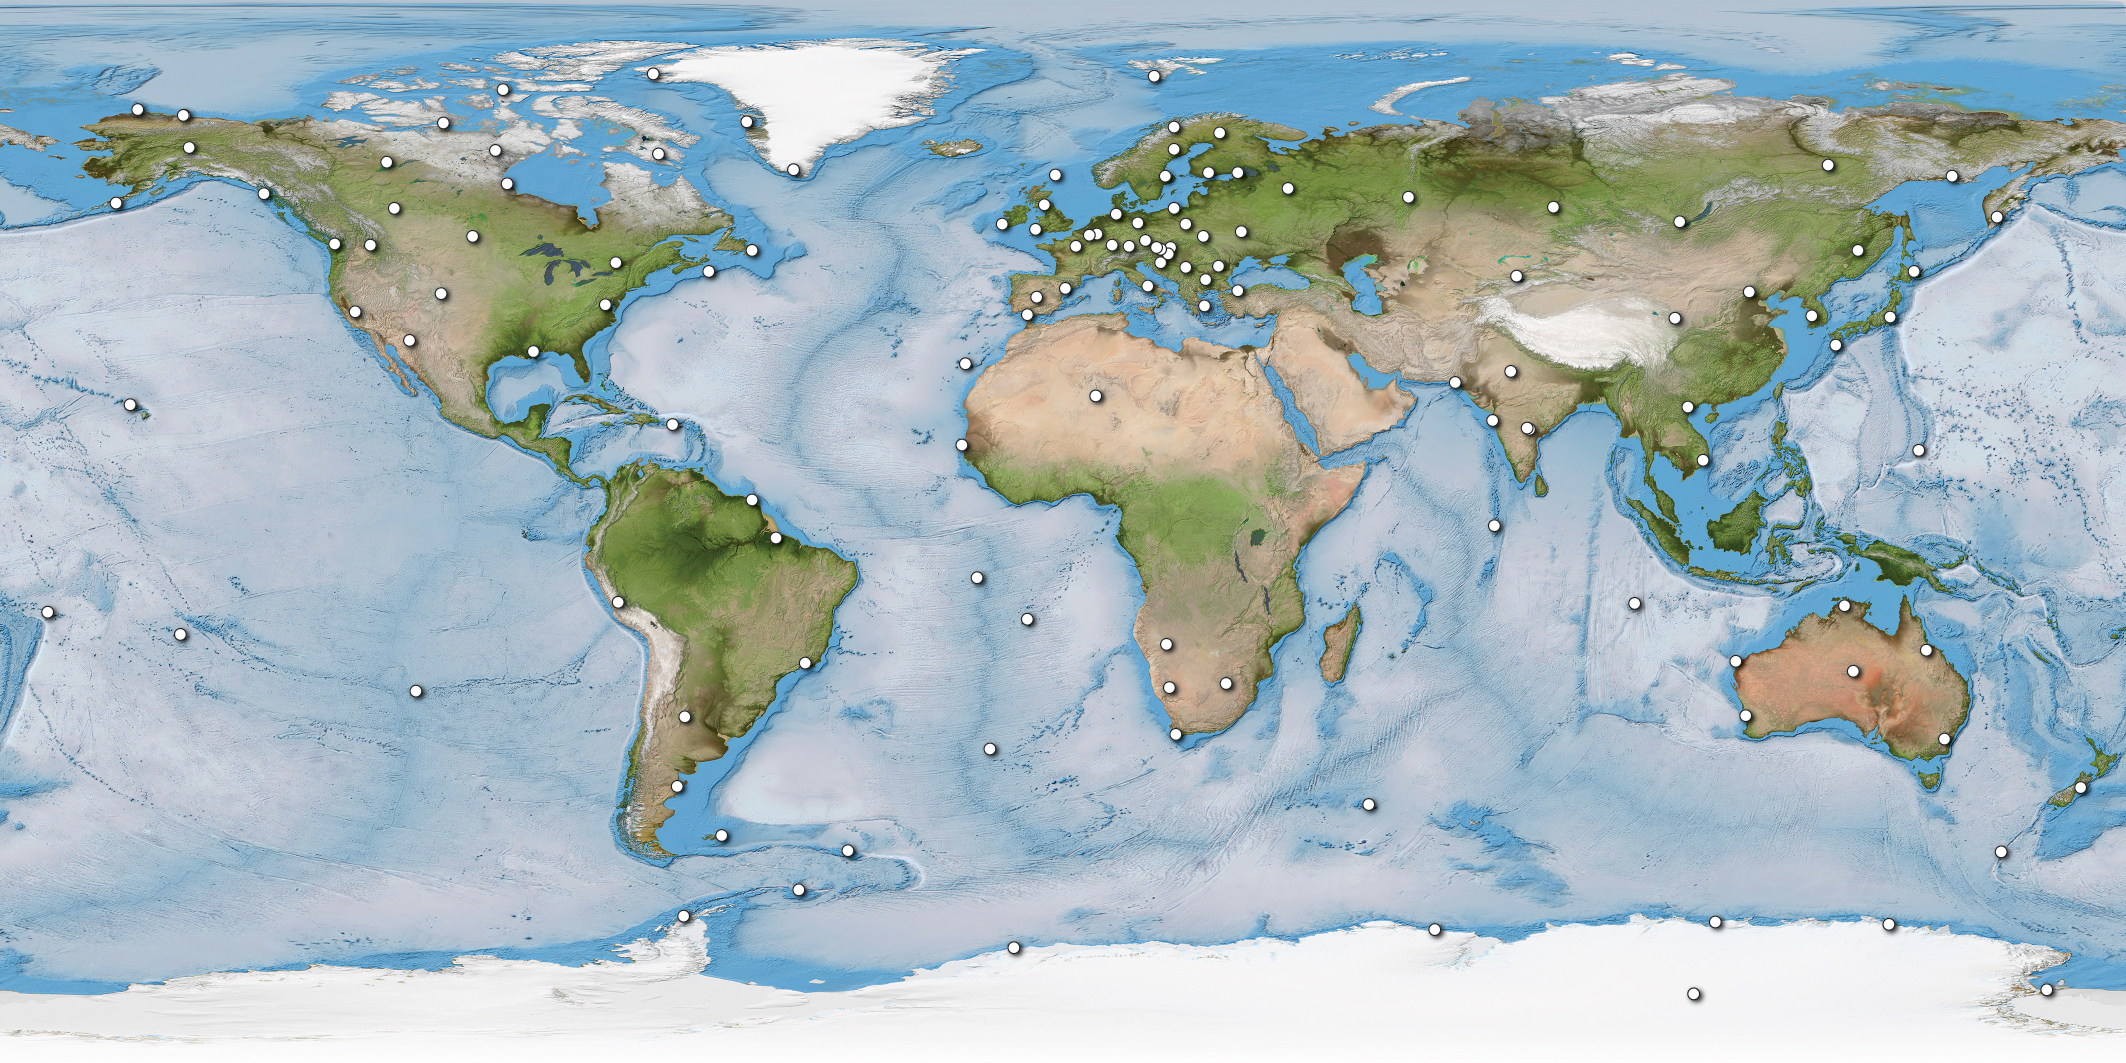 Map of INTERMAGNET magnetic observatories in 2019